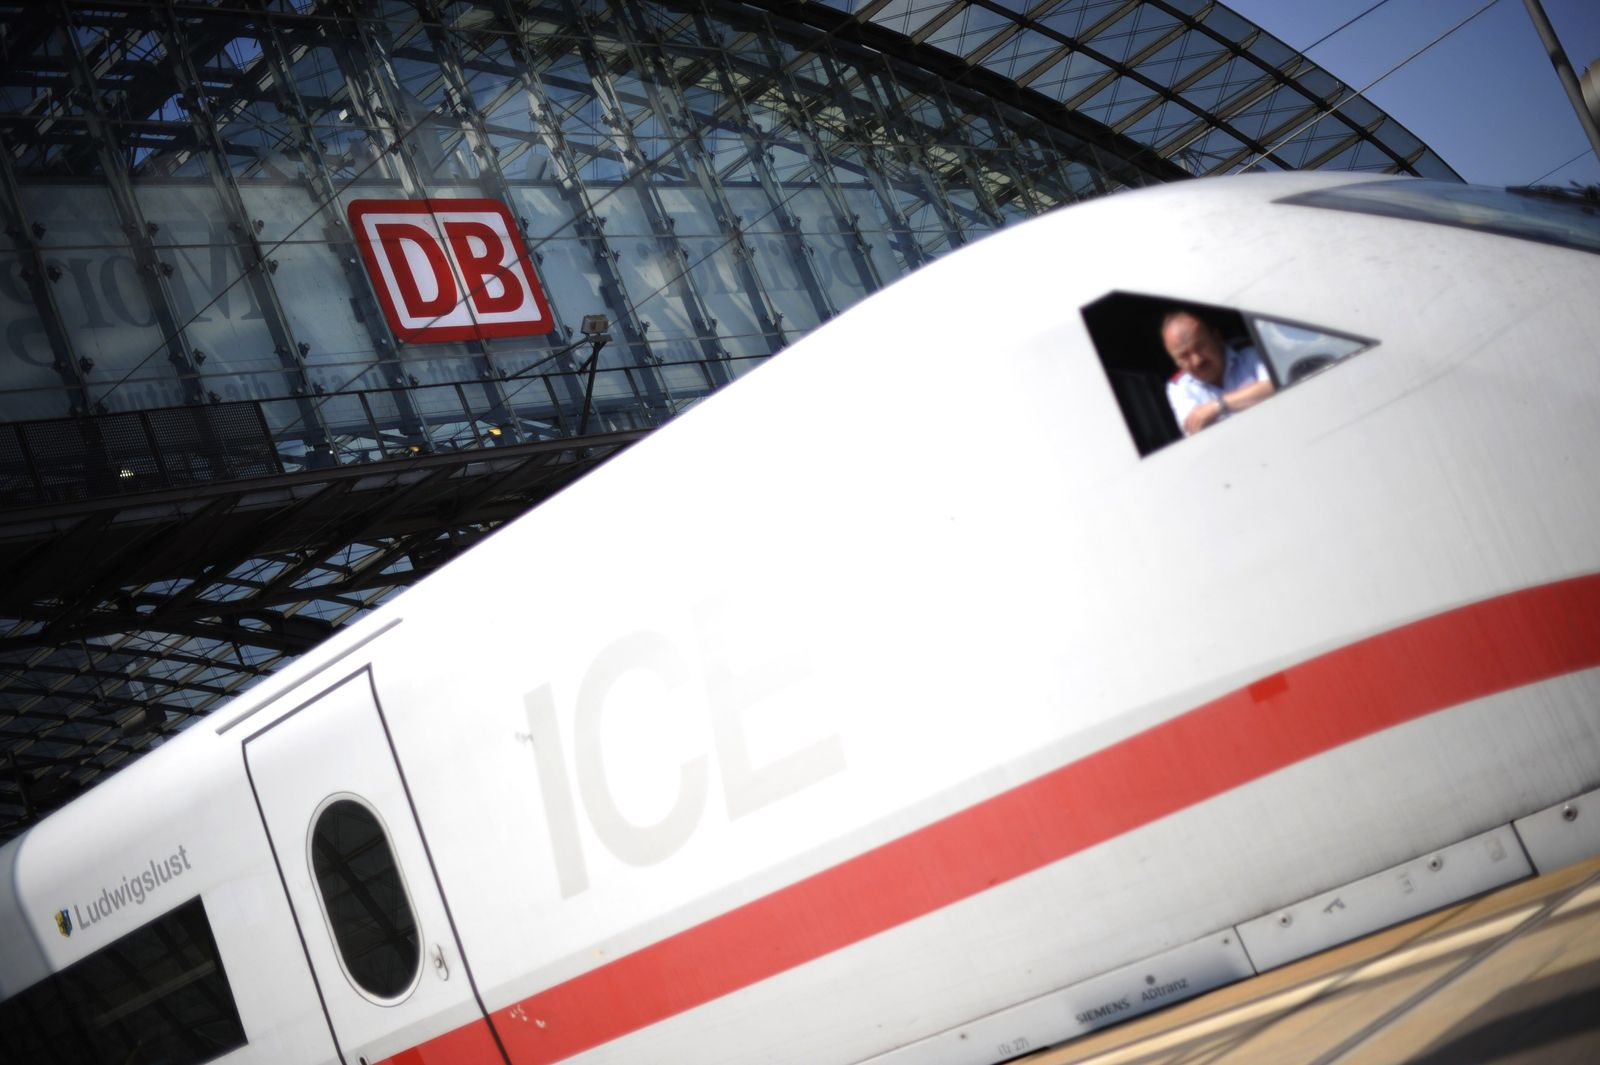 GERMANY-WEATHER-RAIL-DEUTSCHE BAHN